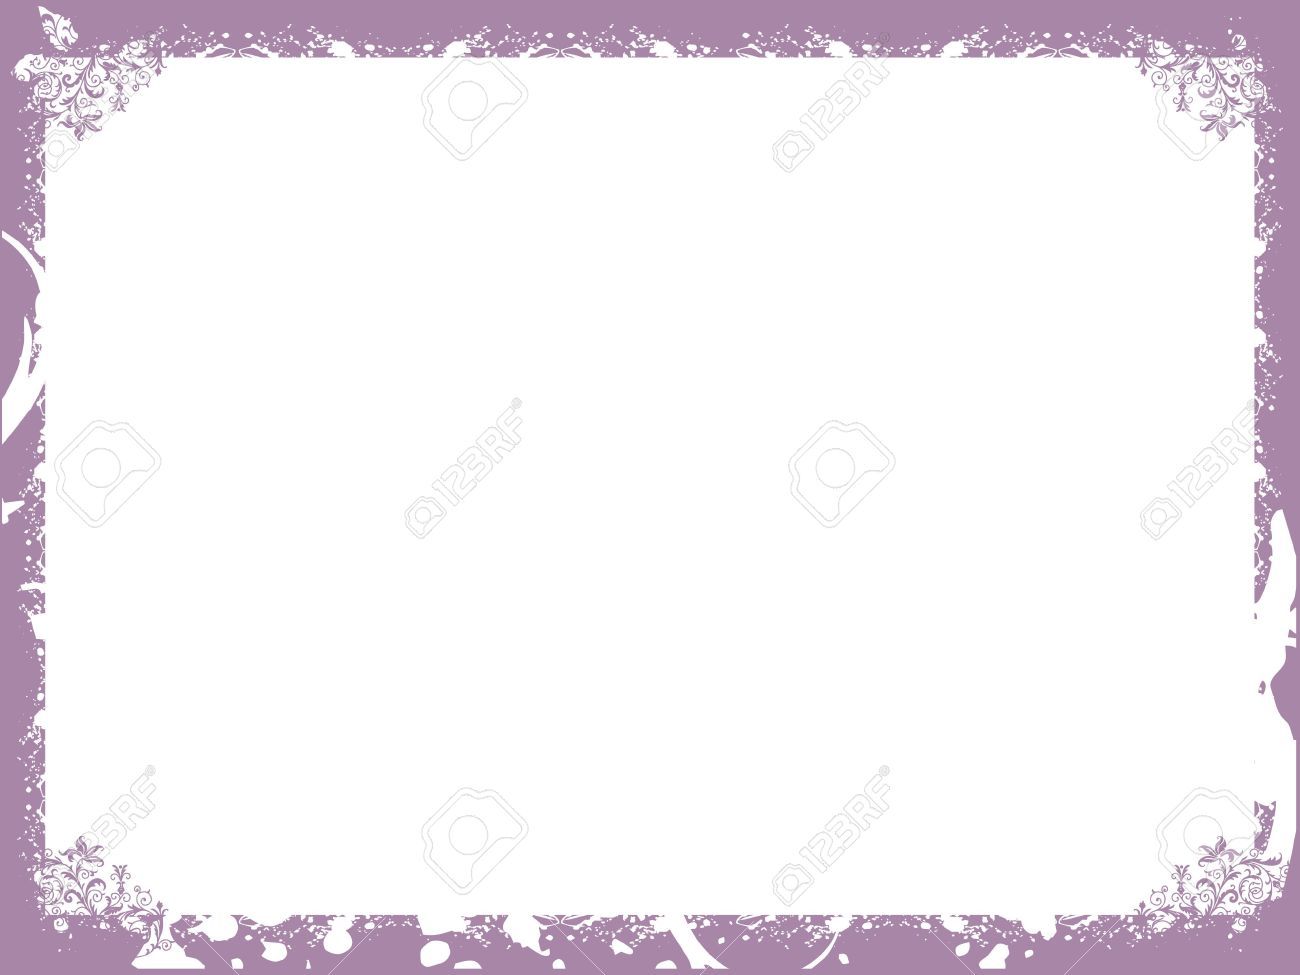 Floral Purple Border Background Frame Wallpaper Stock Photo